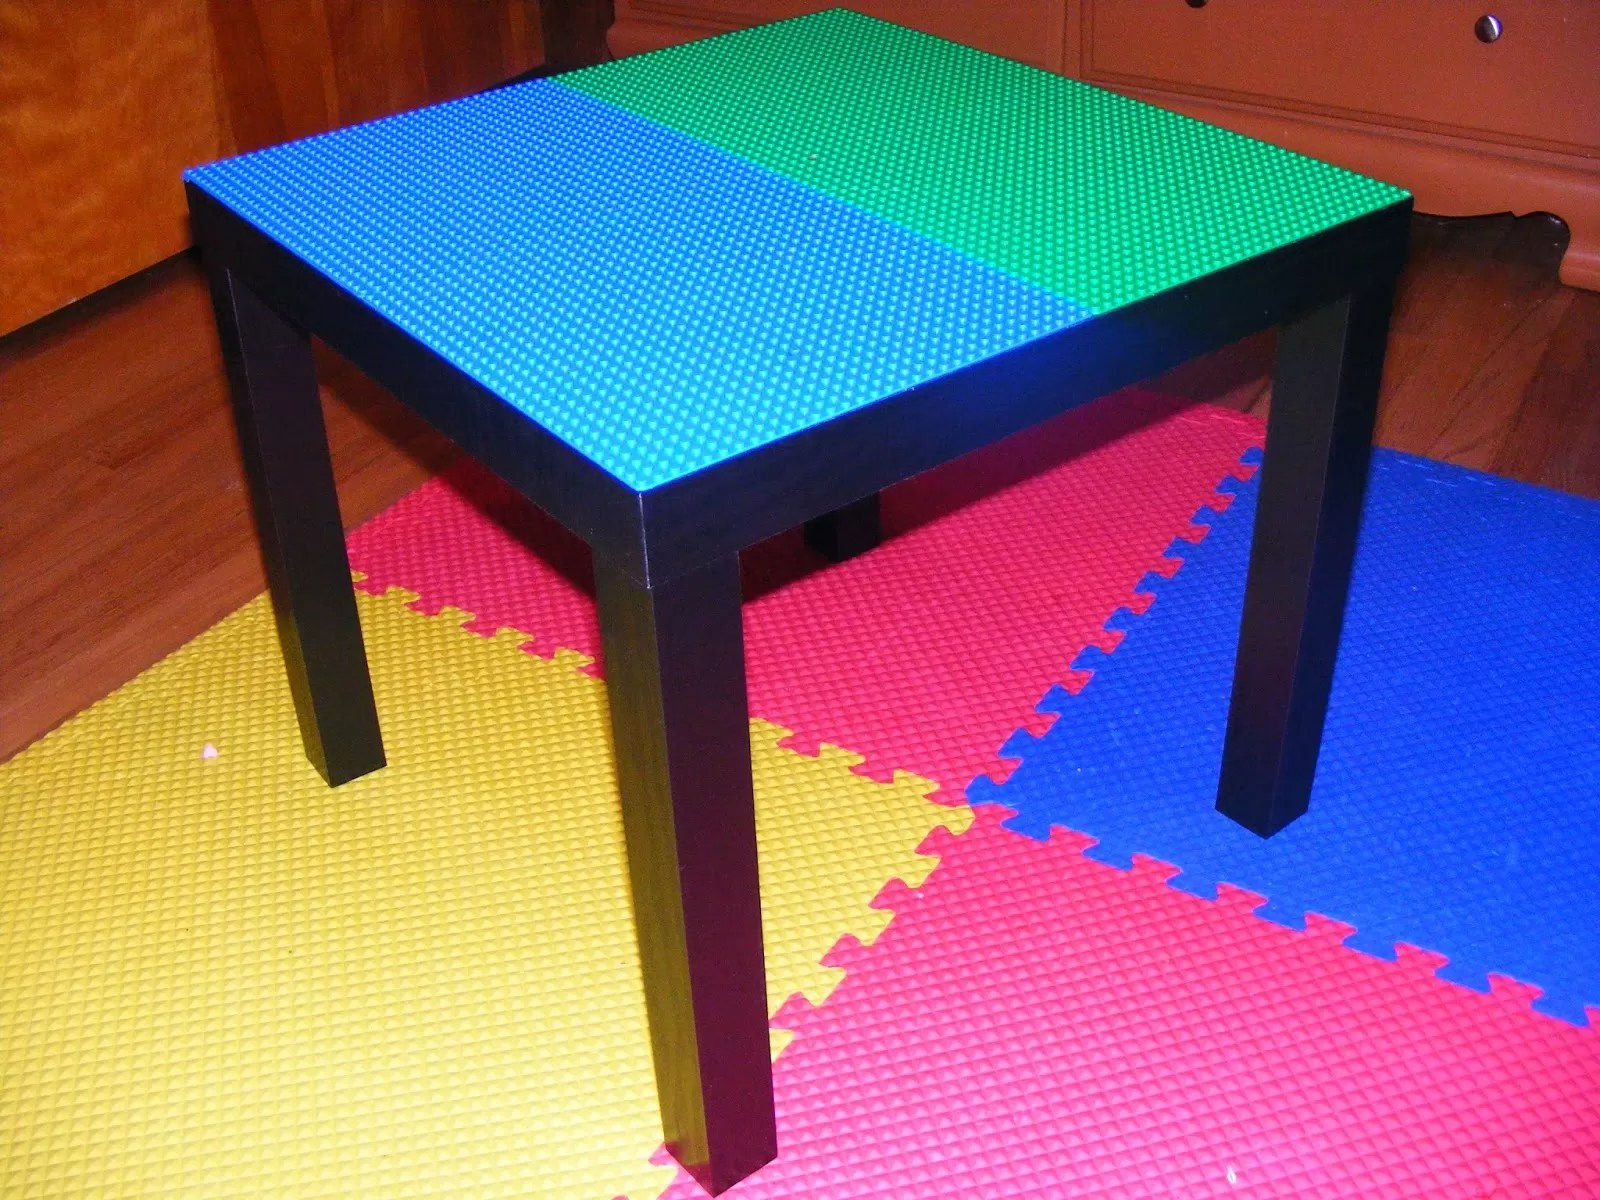 Ikea Lack Side Table 50+ Diys To Build A Lego Table | Guide Patterns